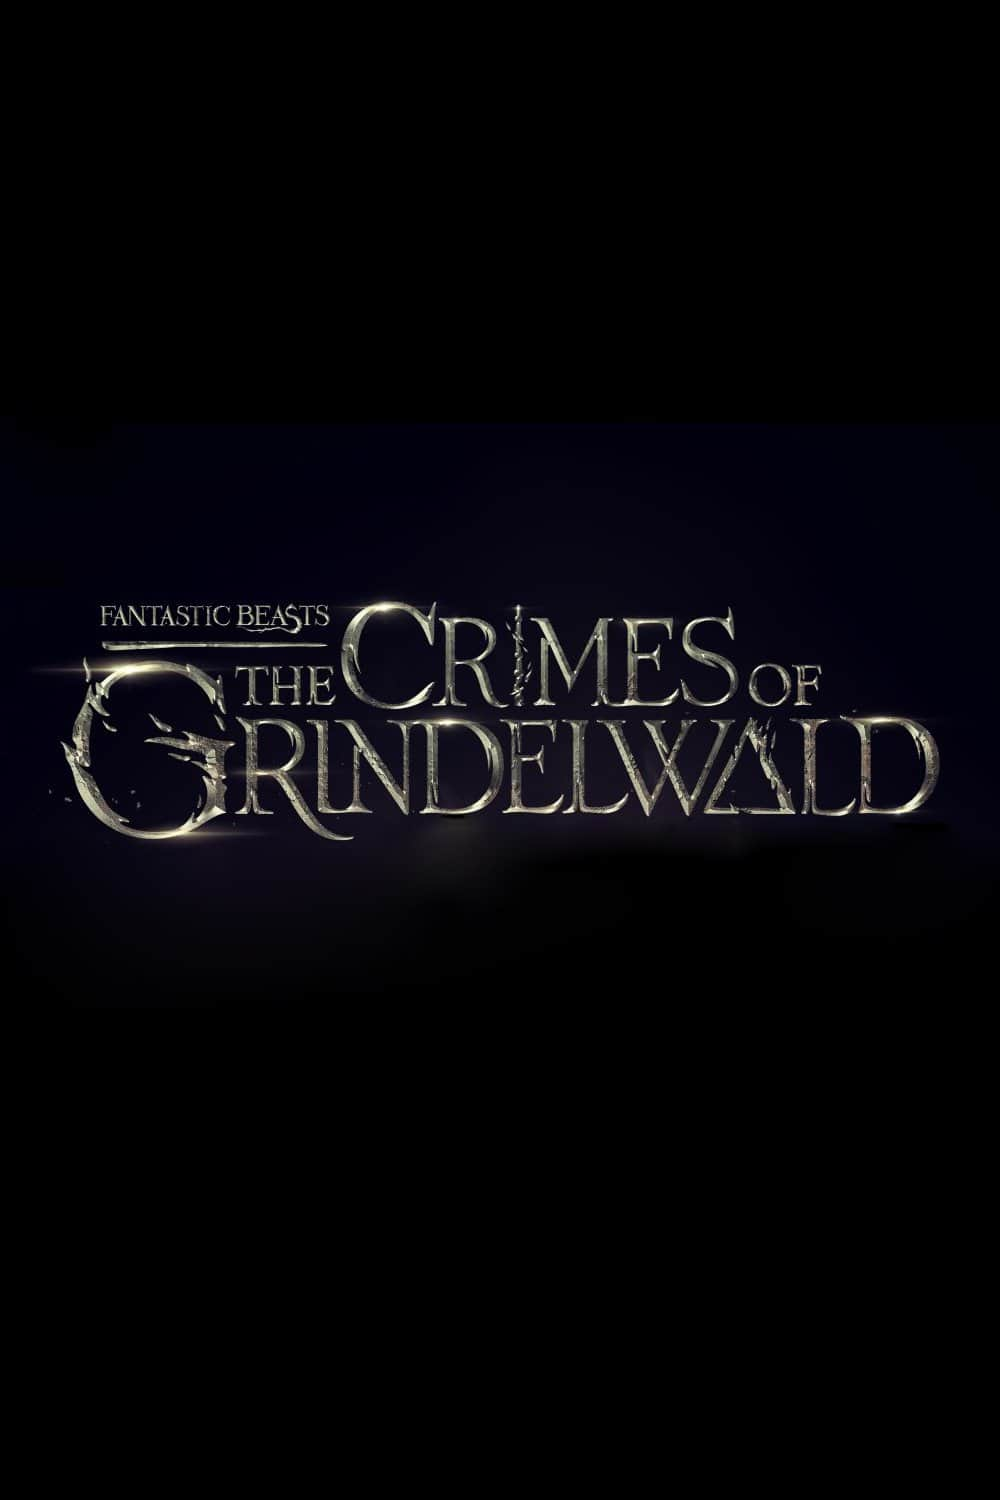 Fantastic Beasts: The Crimes of Grindelwald, 2018